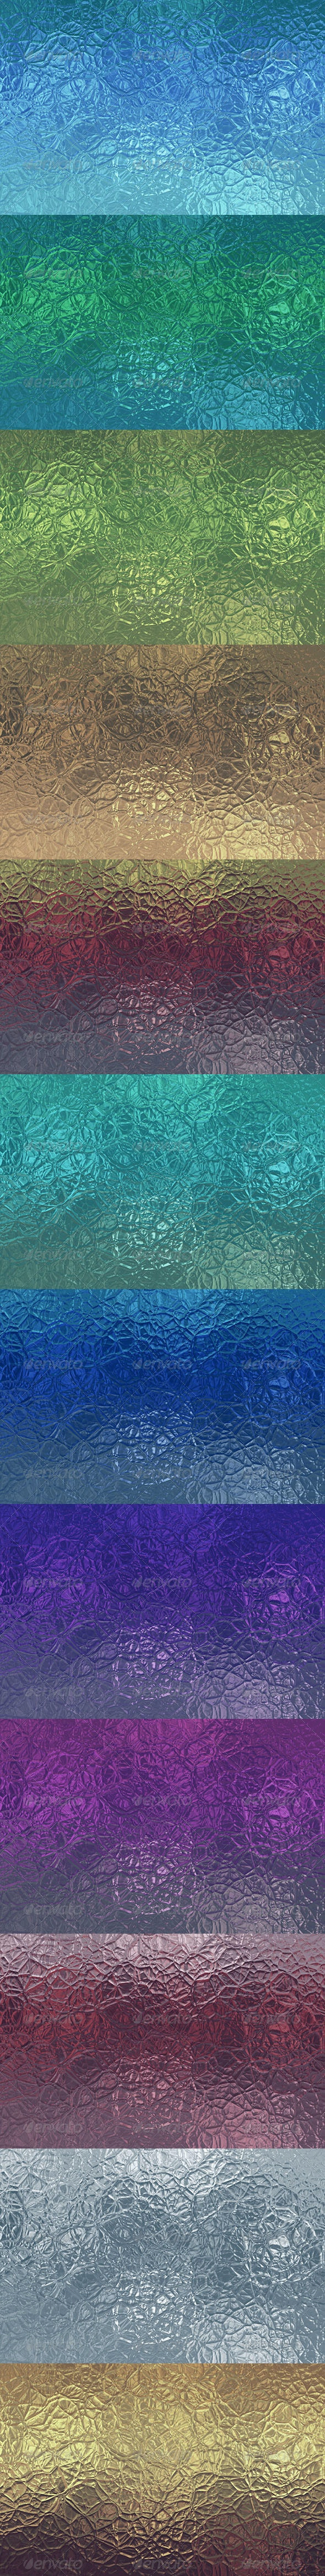 12 Glass Backgrounds - Abstract Backgrounds